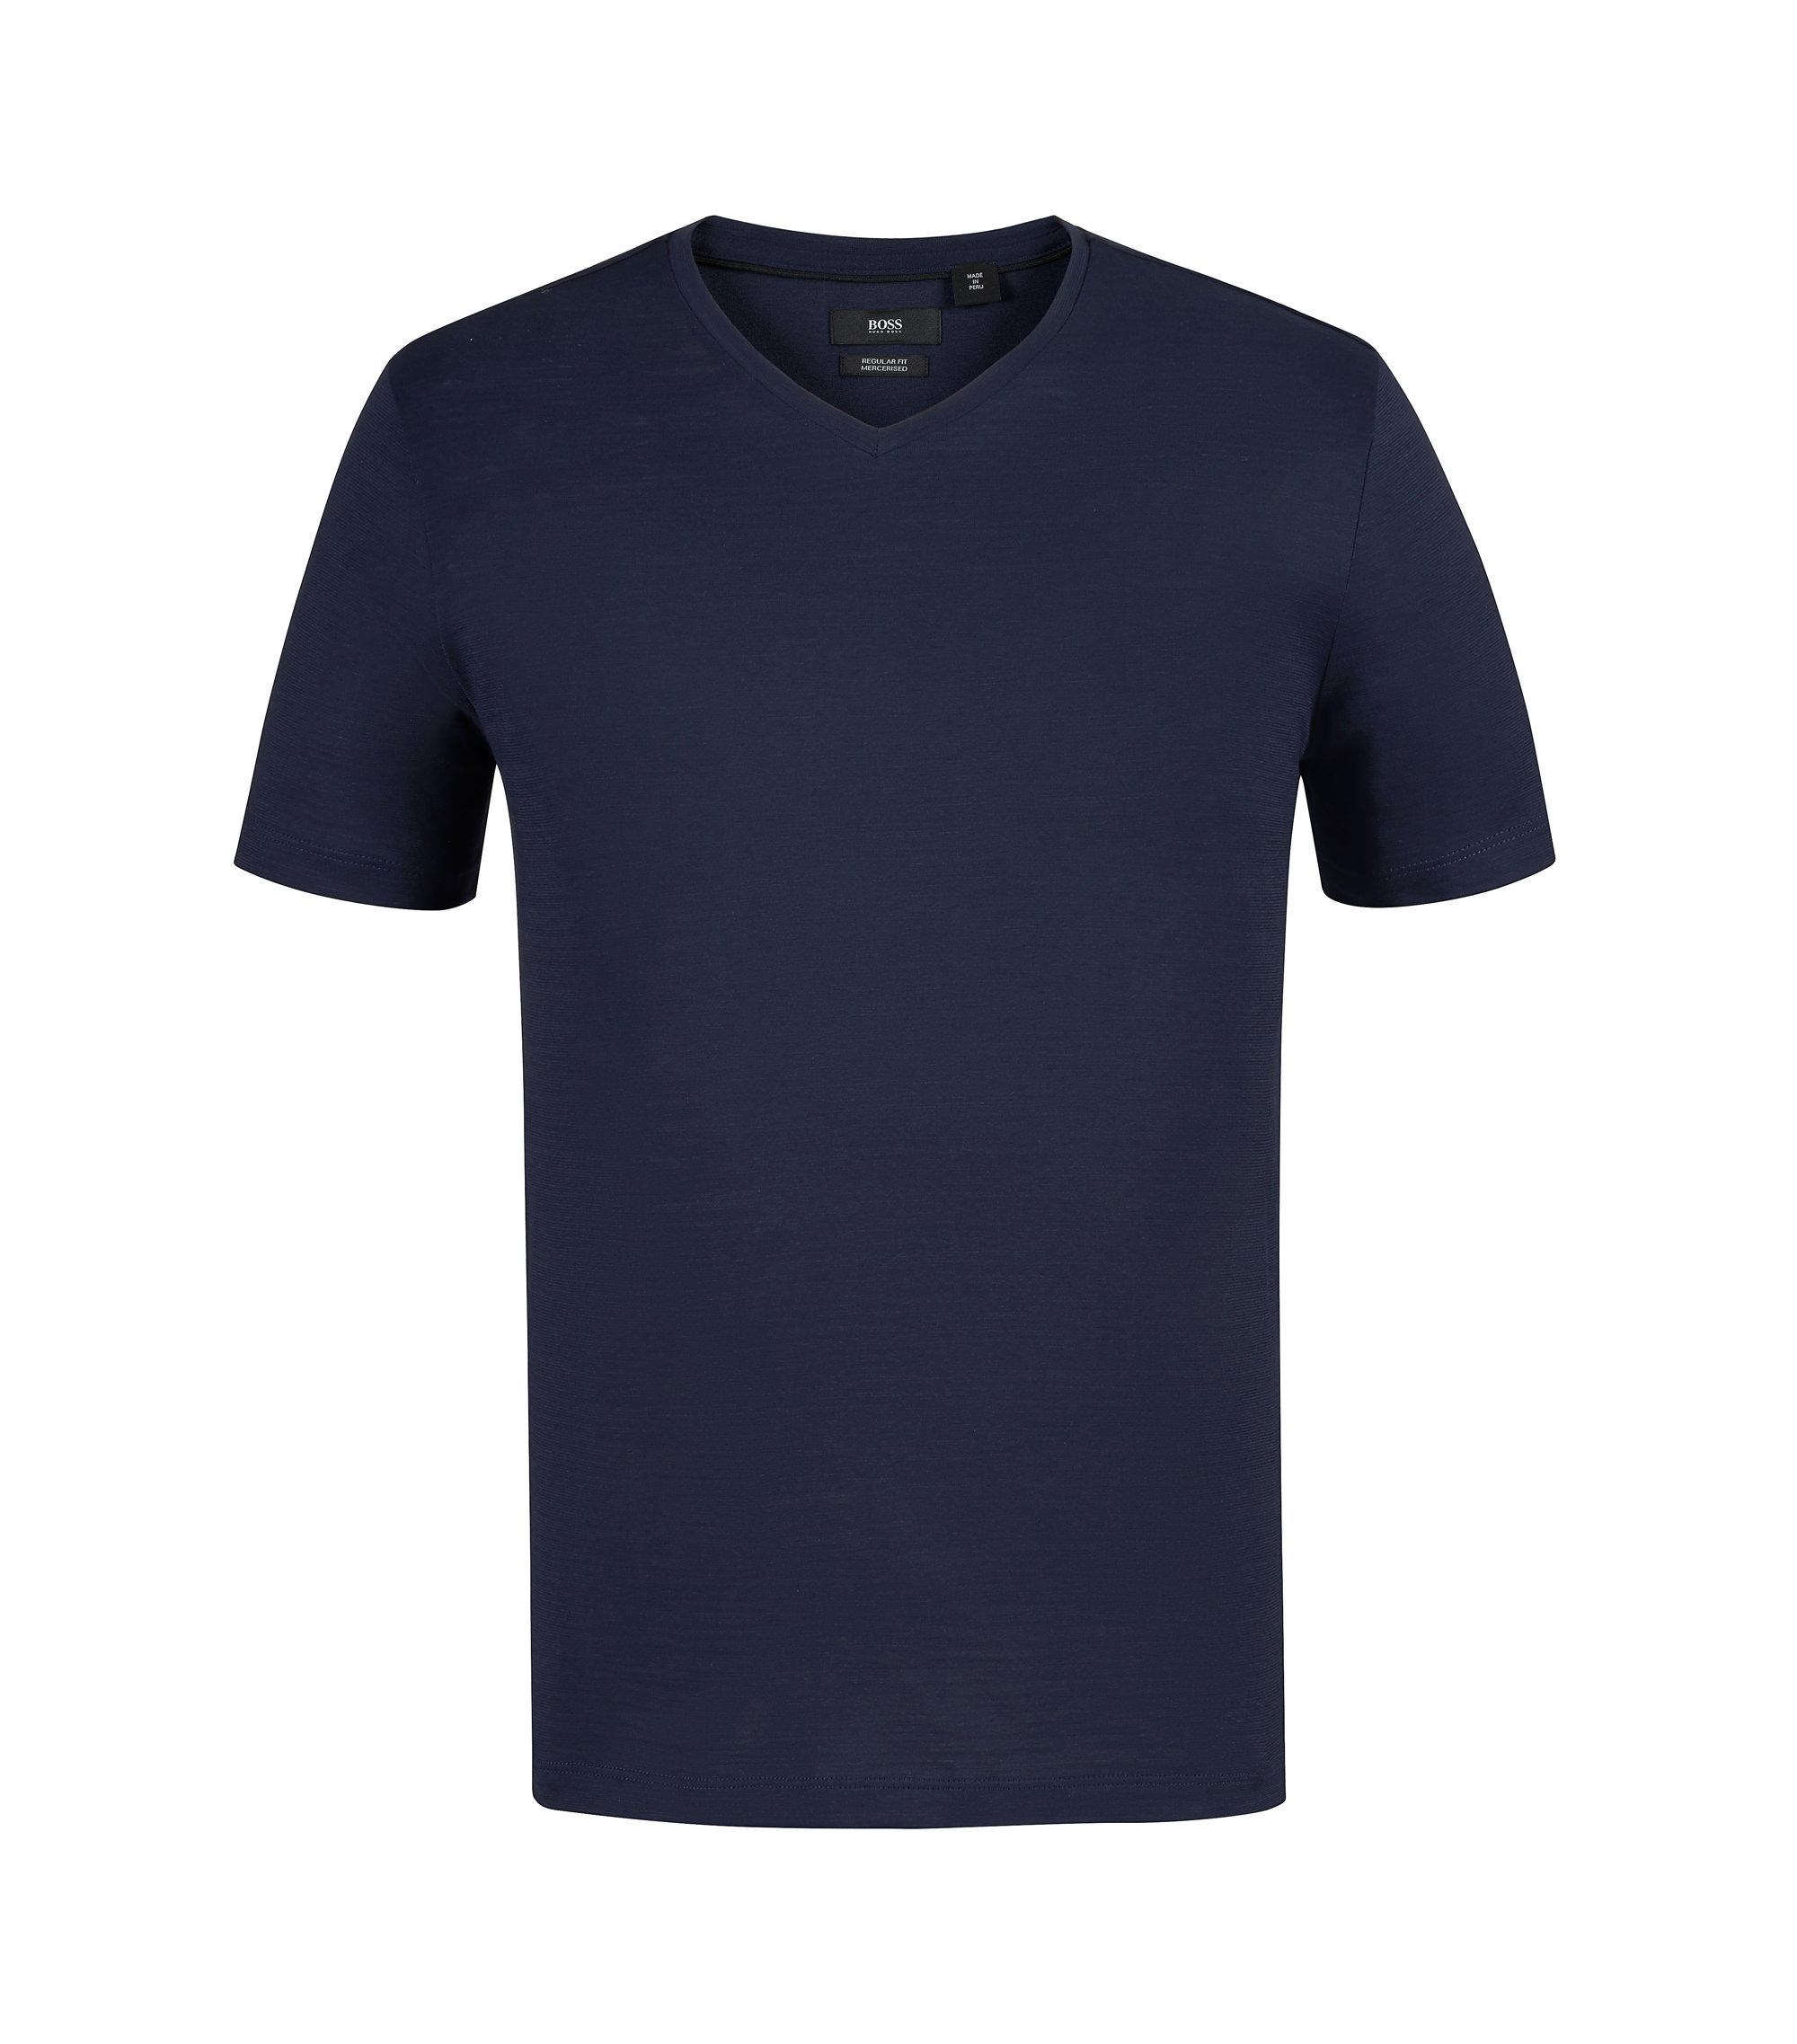 Regular-fit T-shirt in mercerized cotton, Dark Blue